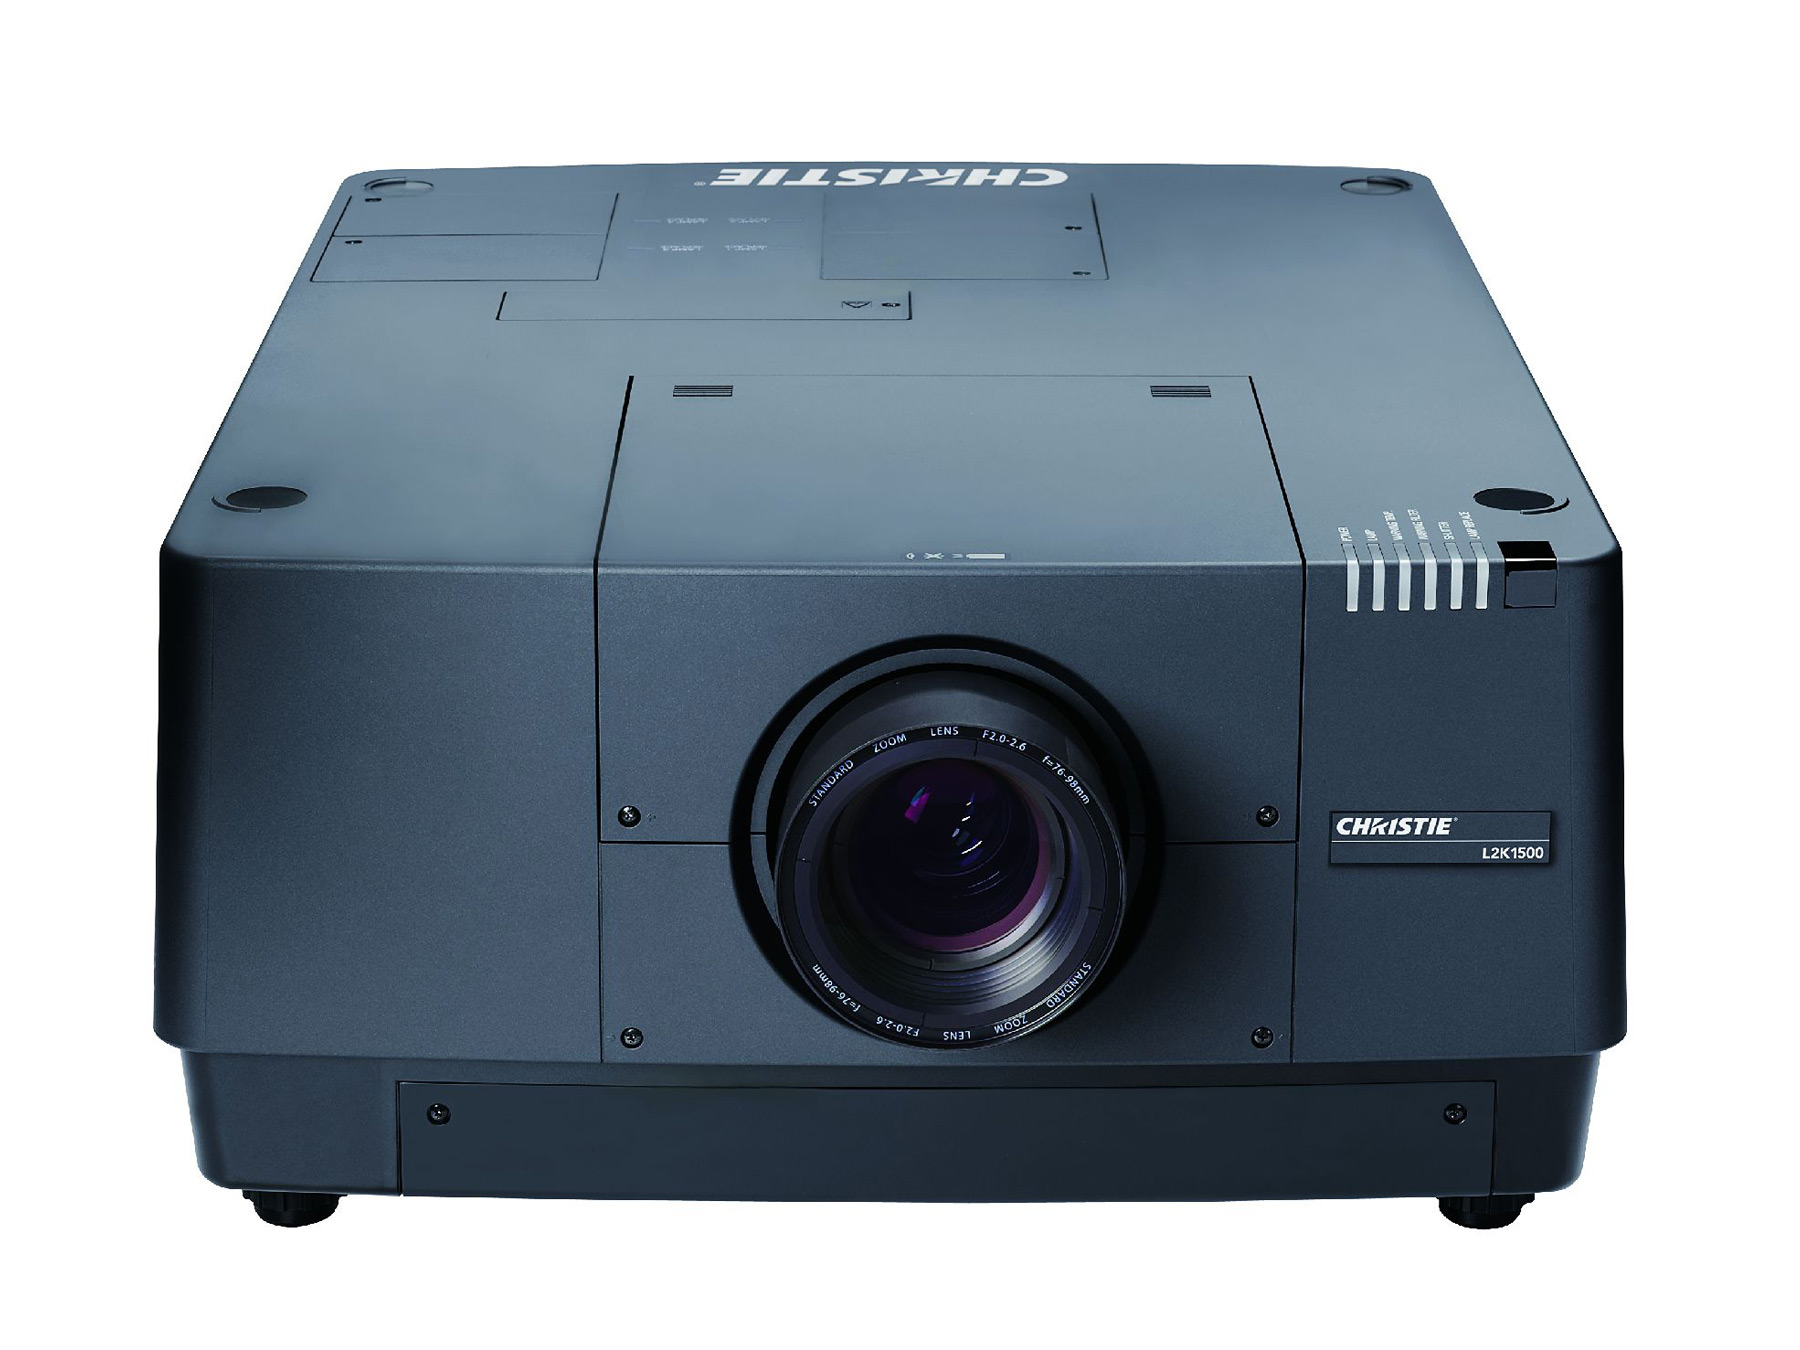 /globalassets/.catalog/products/images/christie-l2k1500/gallery/christie-l2k-1500-3-lcd-digital-projector-image-13.jpg